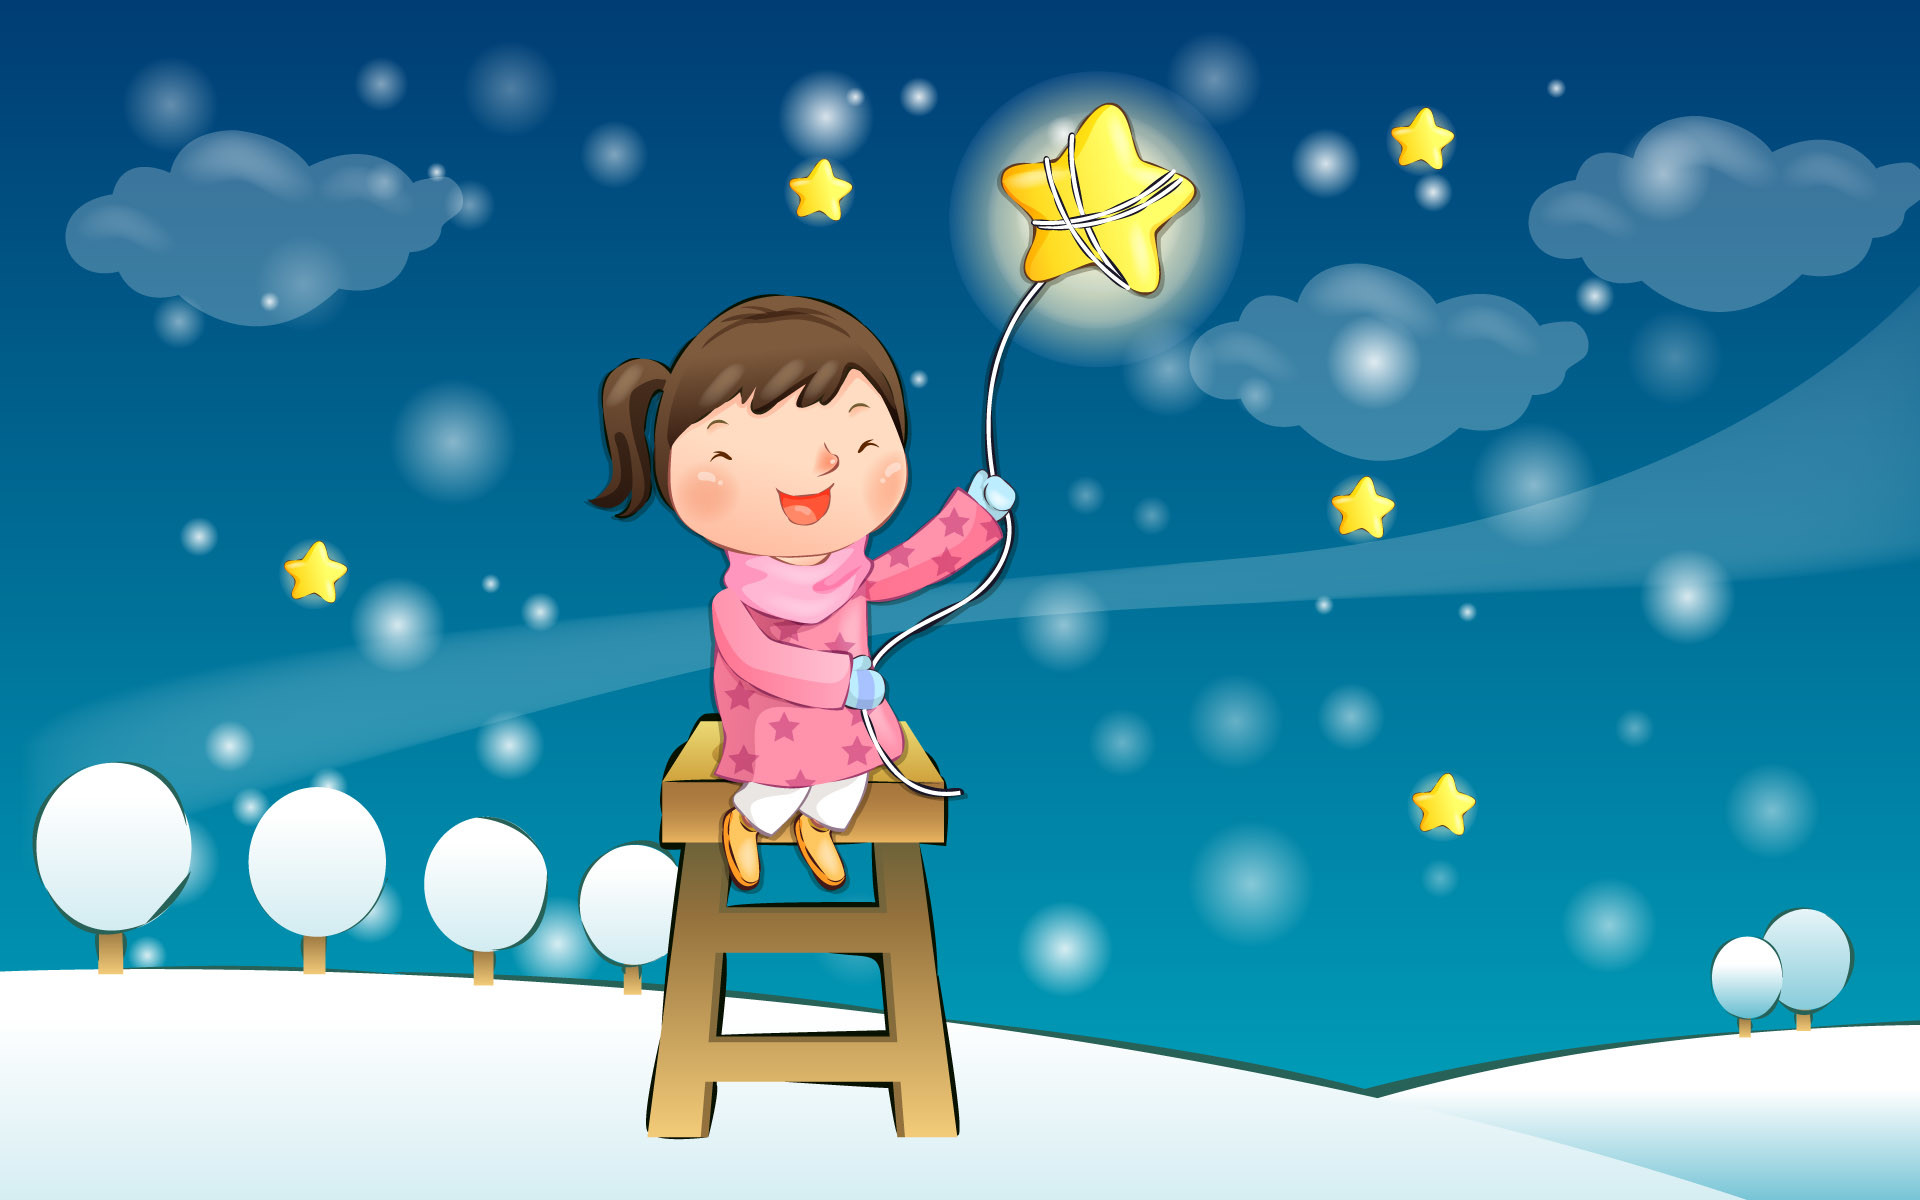 Res: 1920x1200, Cute Winter wallpapers Illustrations